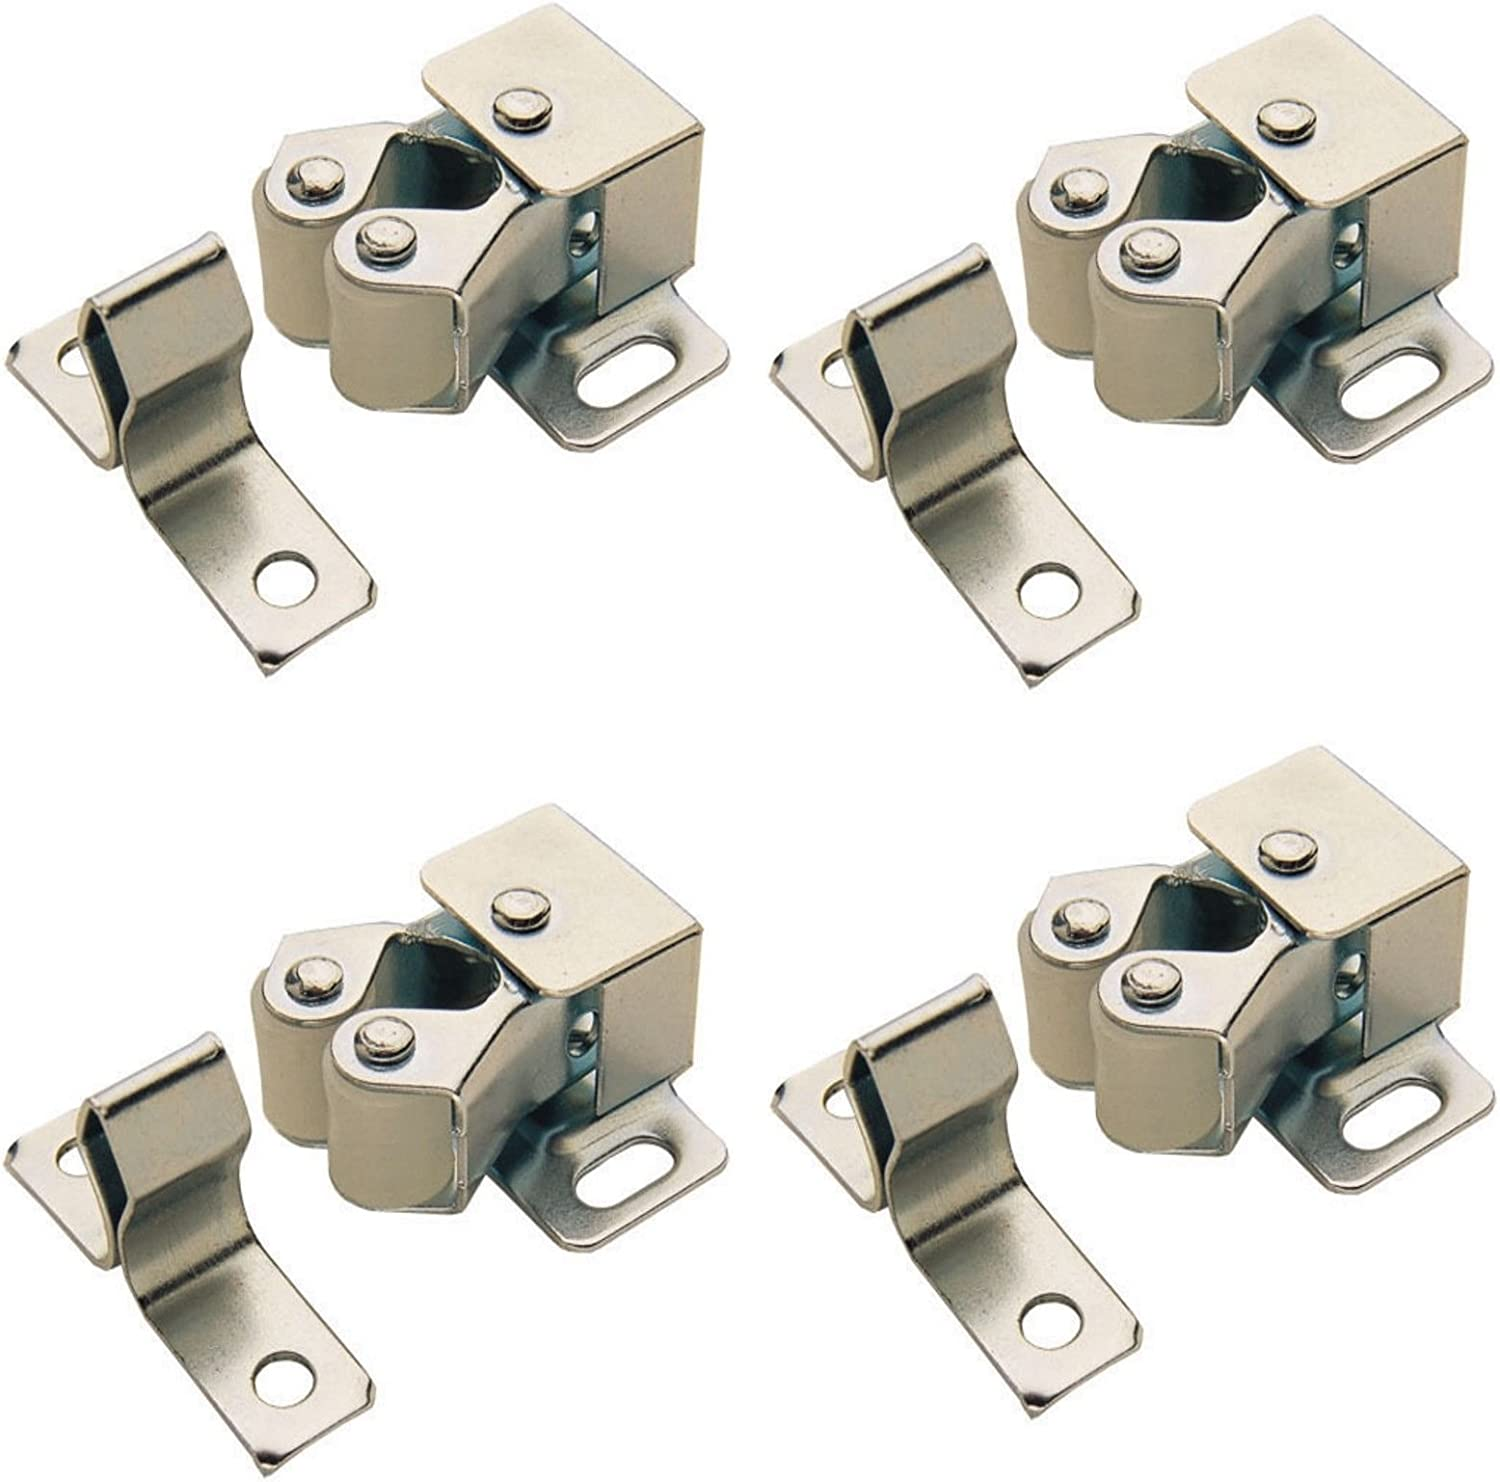 3 X Double Roller Cupboard Catch Screws Included